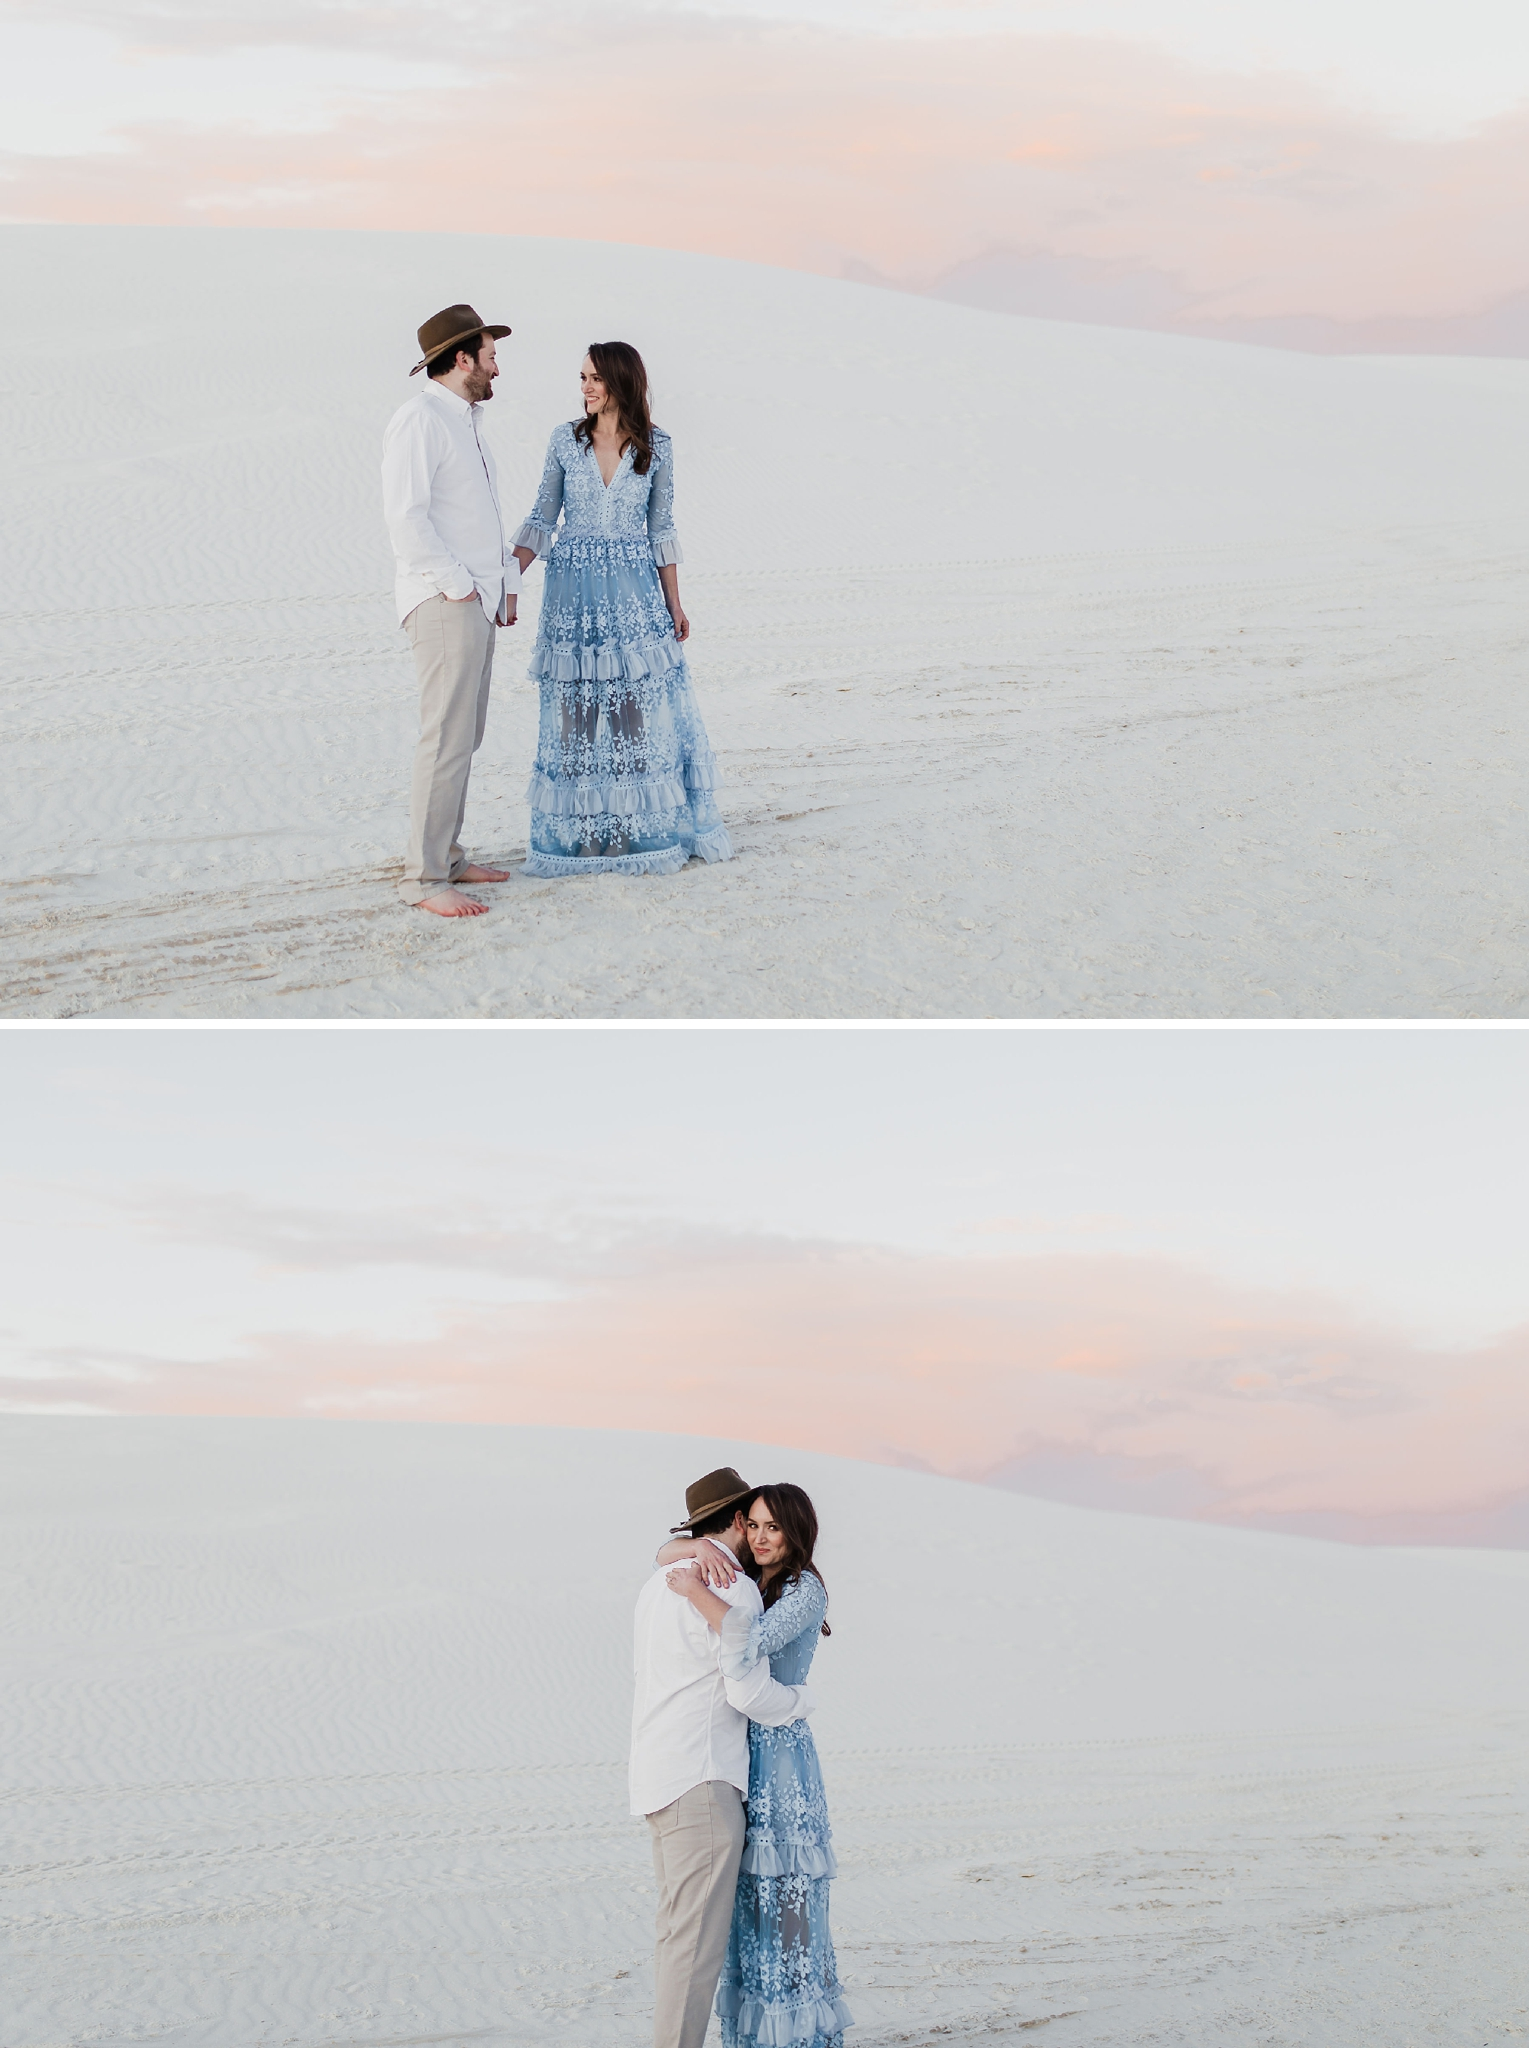 Alicia+lucia+photography+-+albuquerque+wedding+photographer+-+santa+fe+wedding+photography+-+new+mexico+wedding+photographer+-+new+mexico+wedding+-+new+mexico+engagement+-+white+sands+engagement+-+white+sands+national+monument_0041.jpg